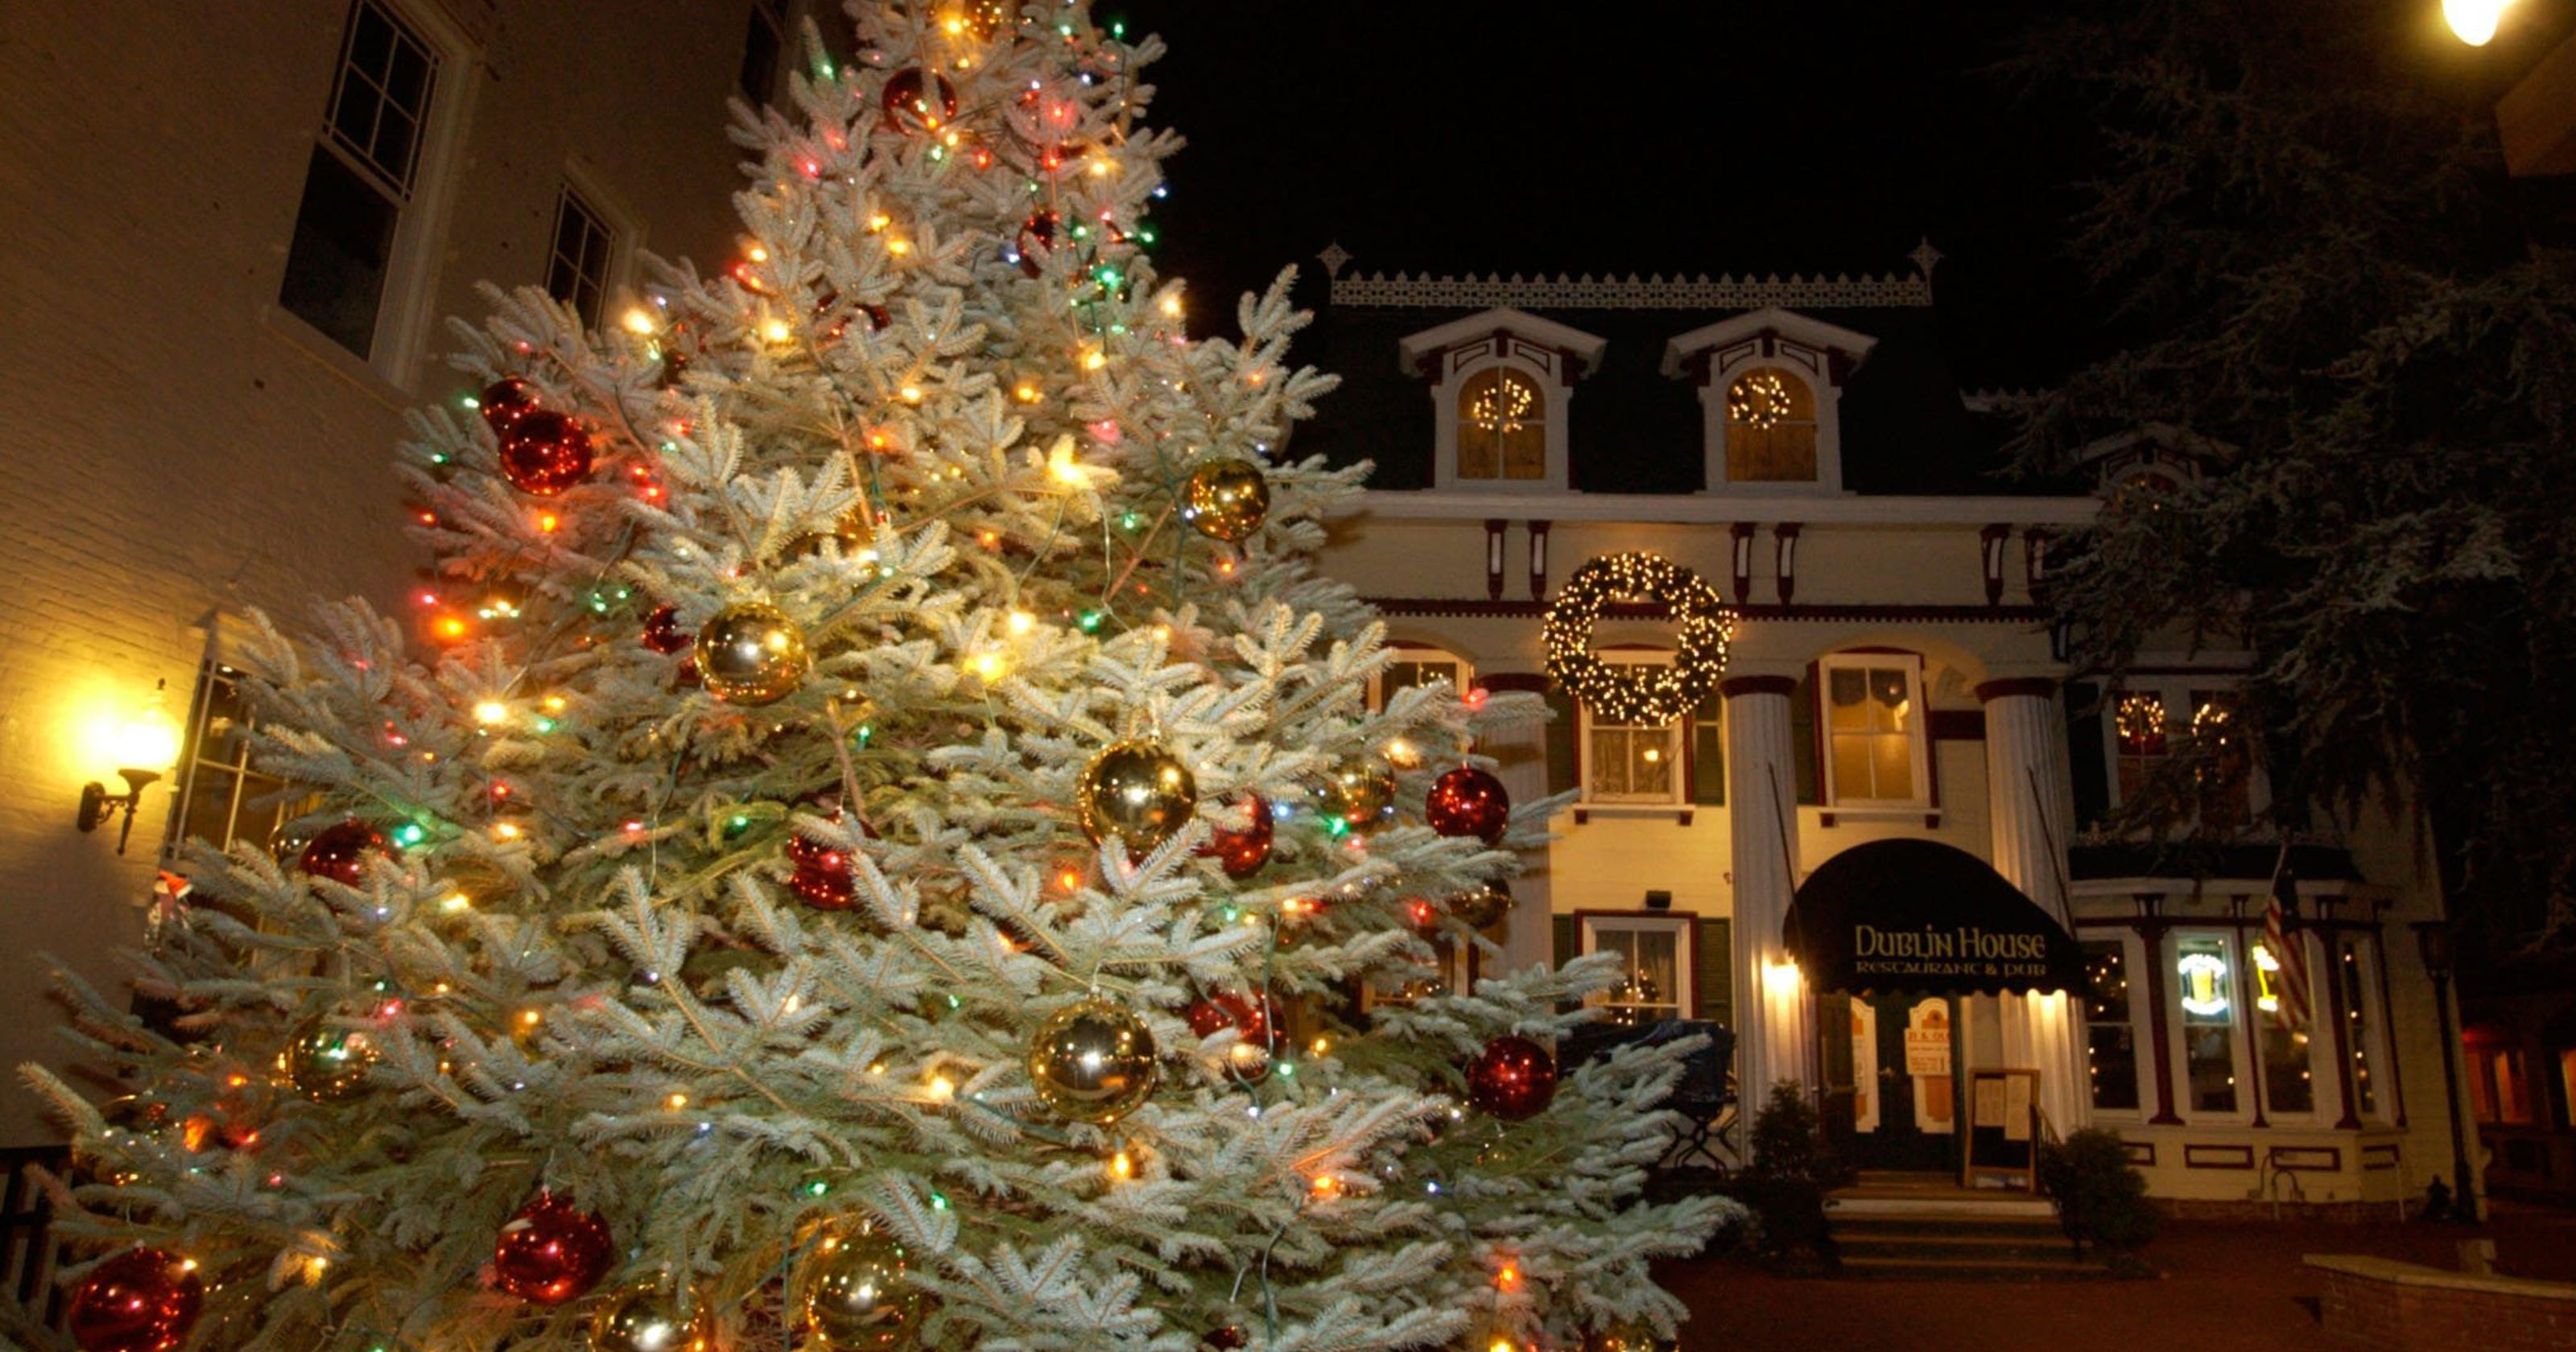 Best Christmas Towns.New Jersey S 10 Best Christmas Towns Is It Yours